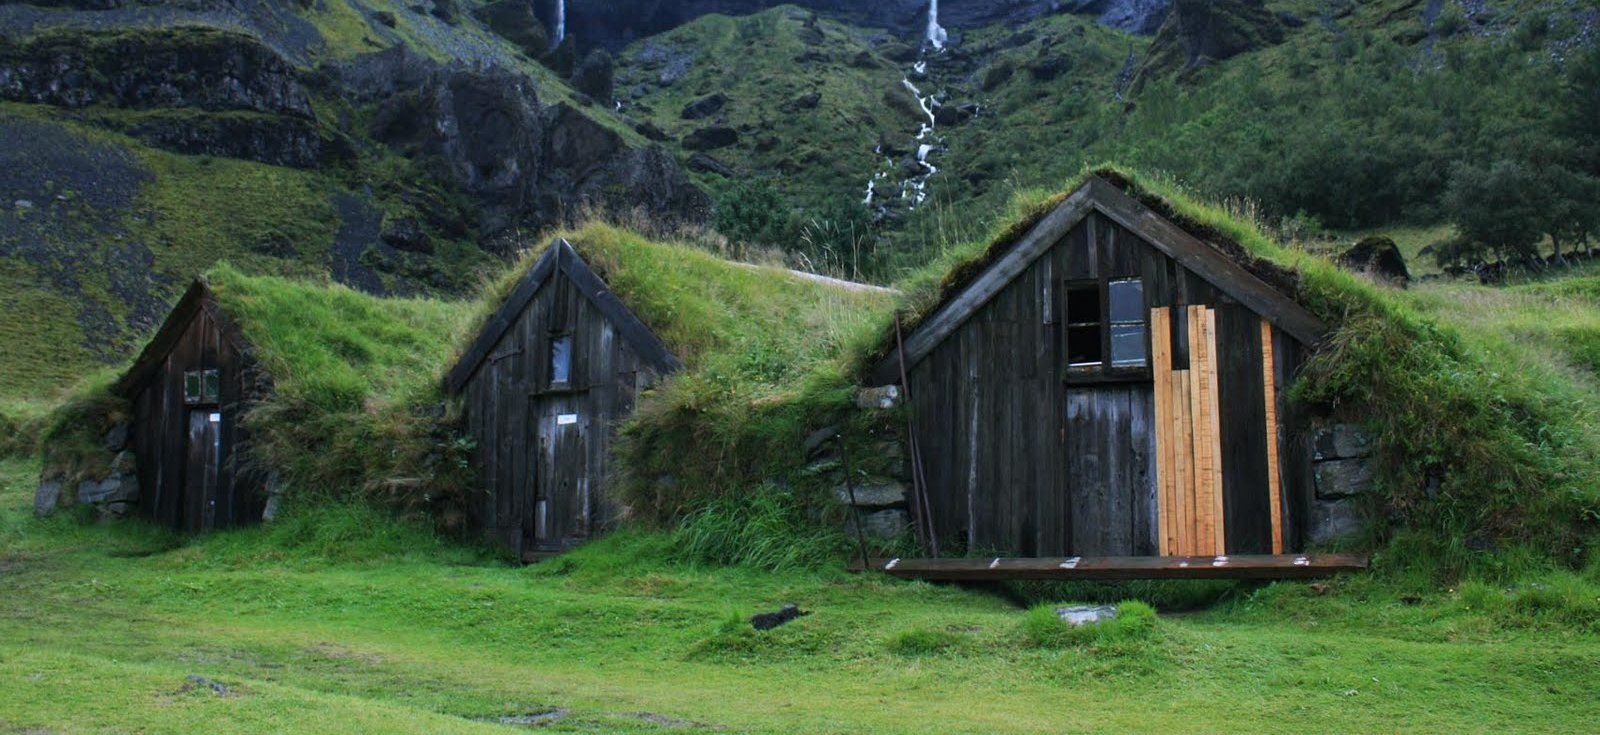 Icelandic Turf Houses – hobbit homes